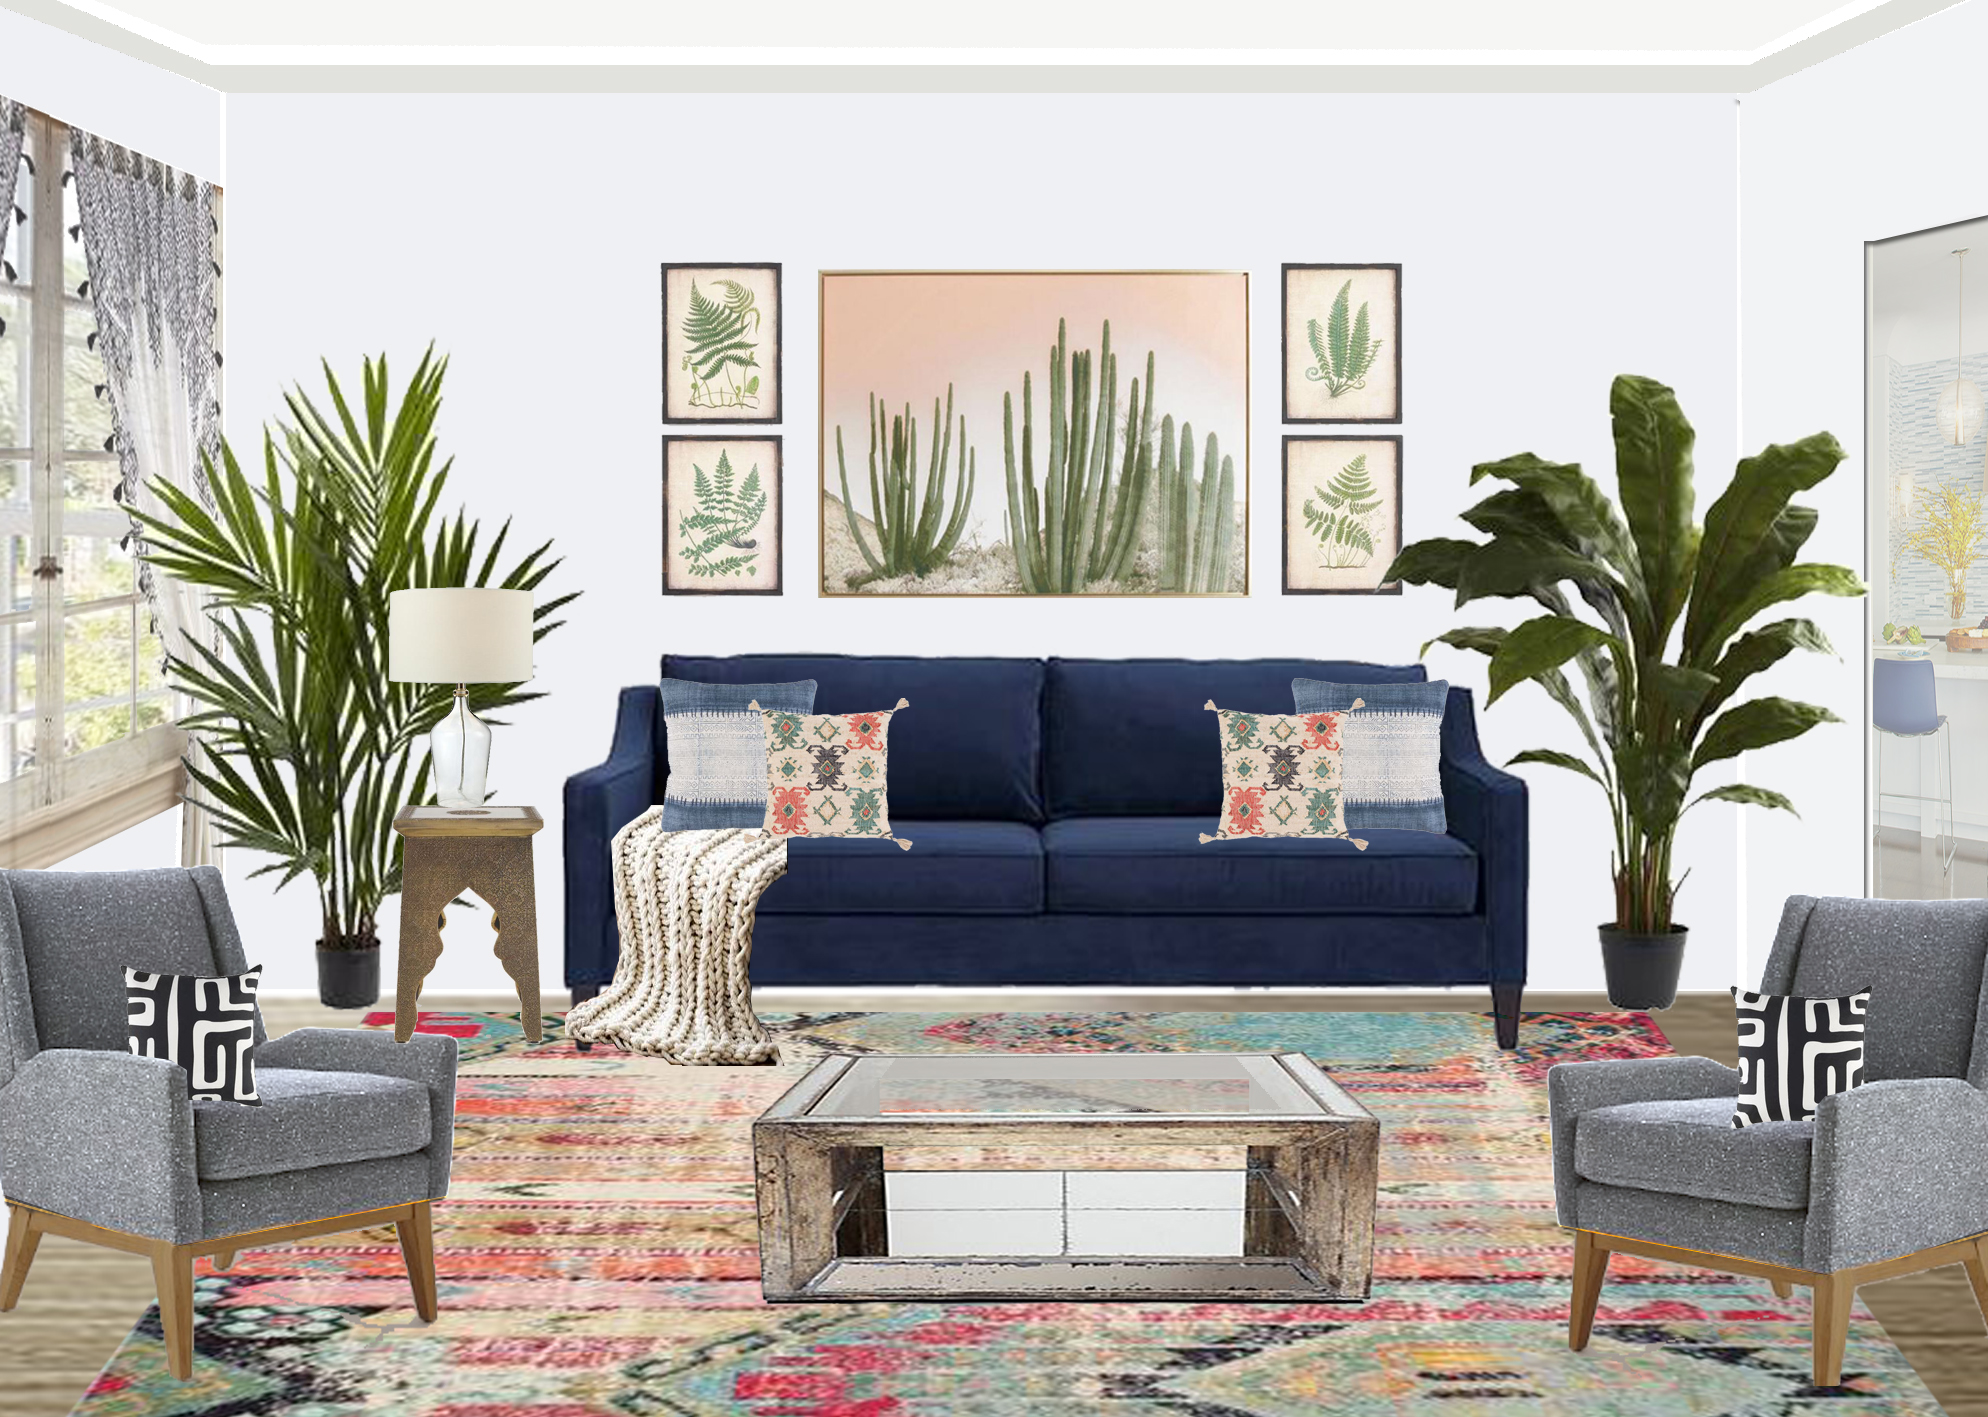 Shop The Look: Colorful Bohemian Living Room